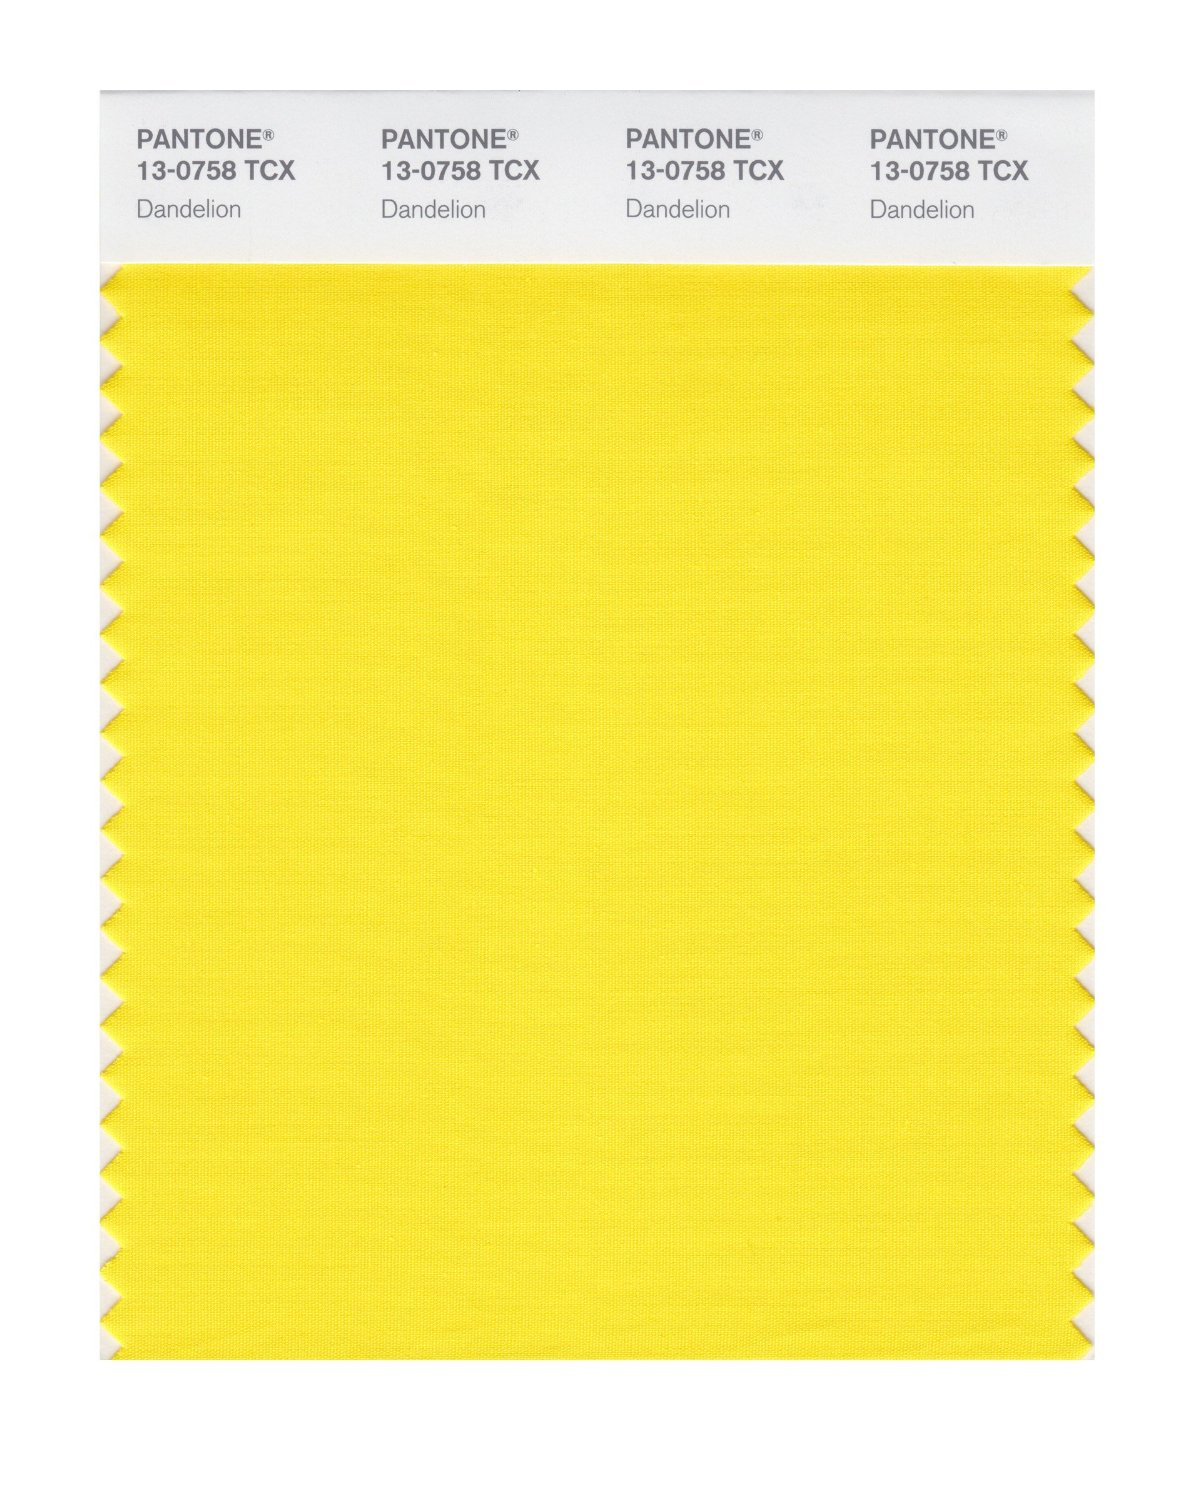 Pantone Smart Swatch 13-0758 Dandelion